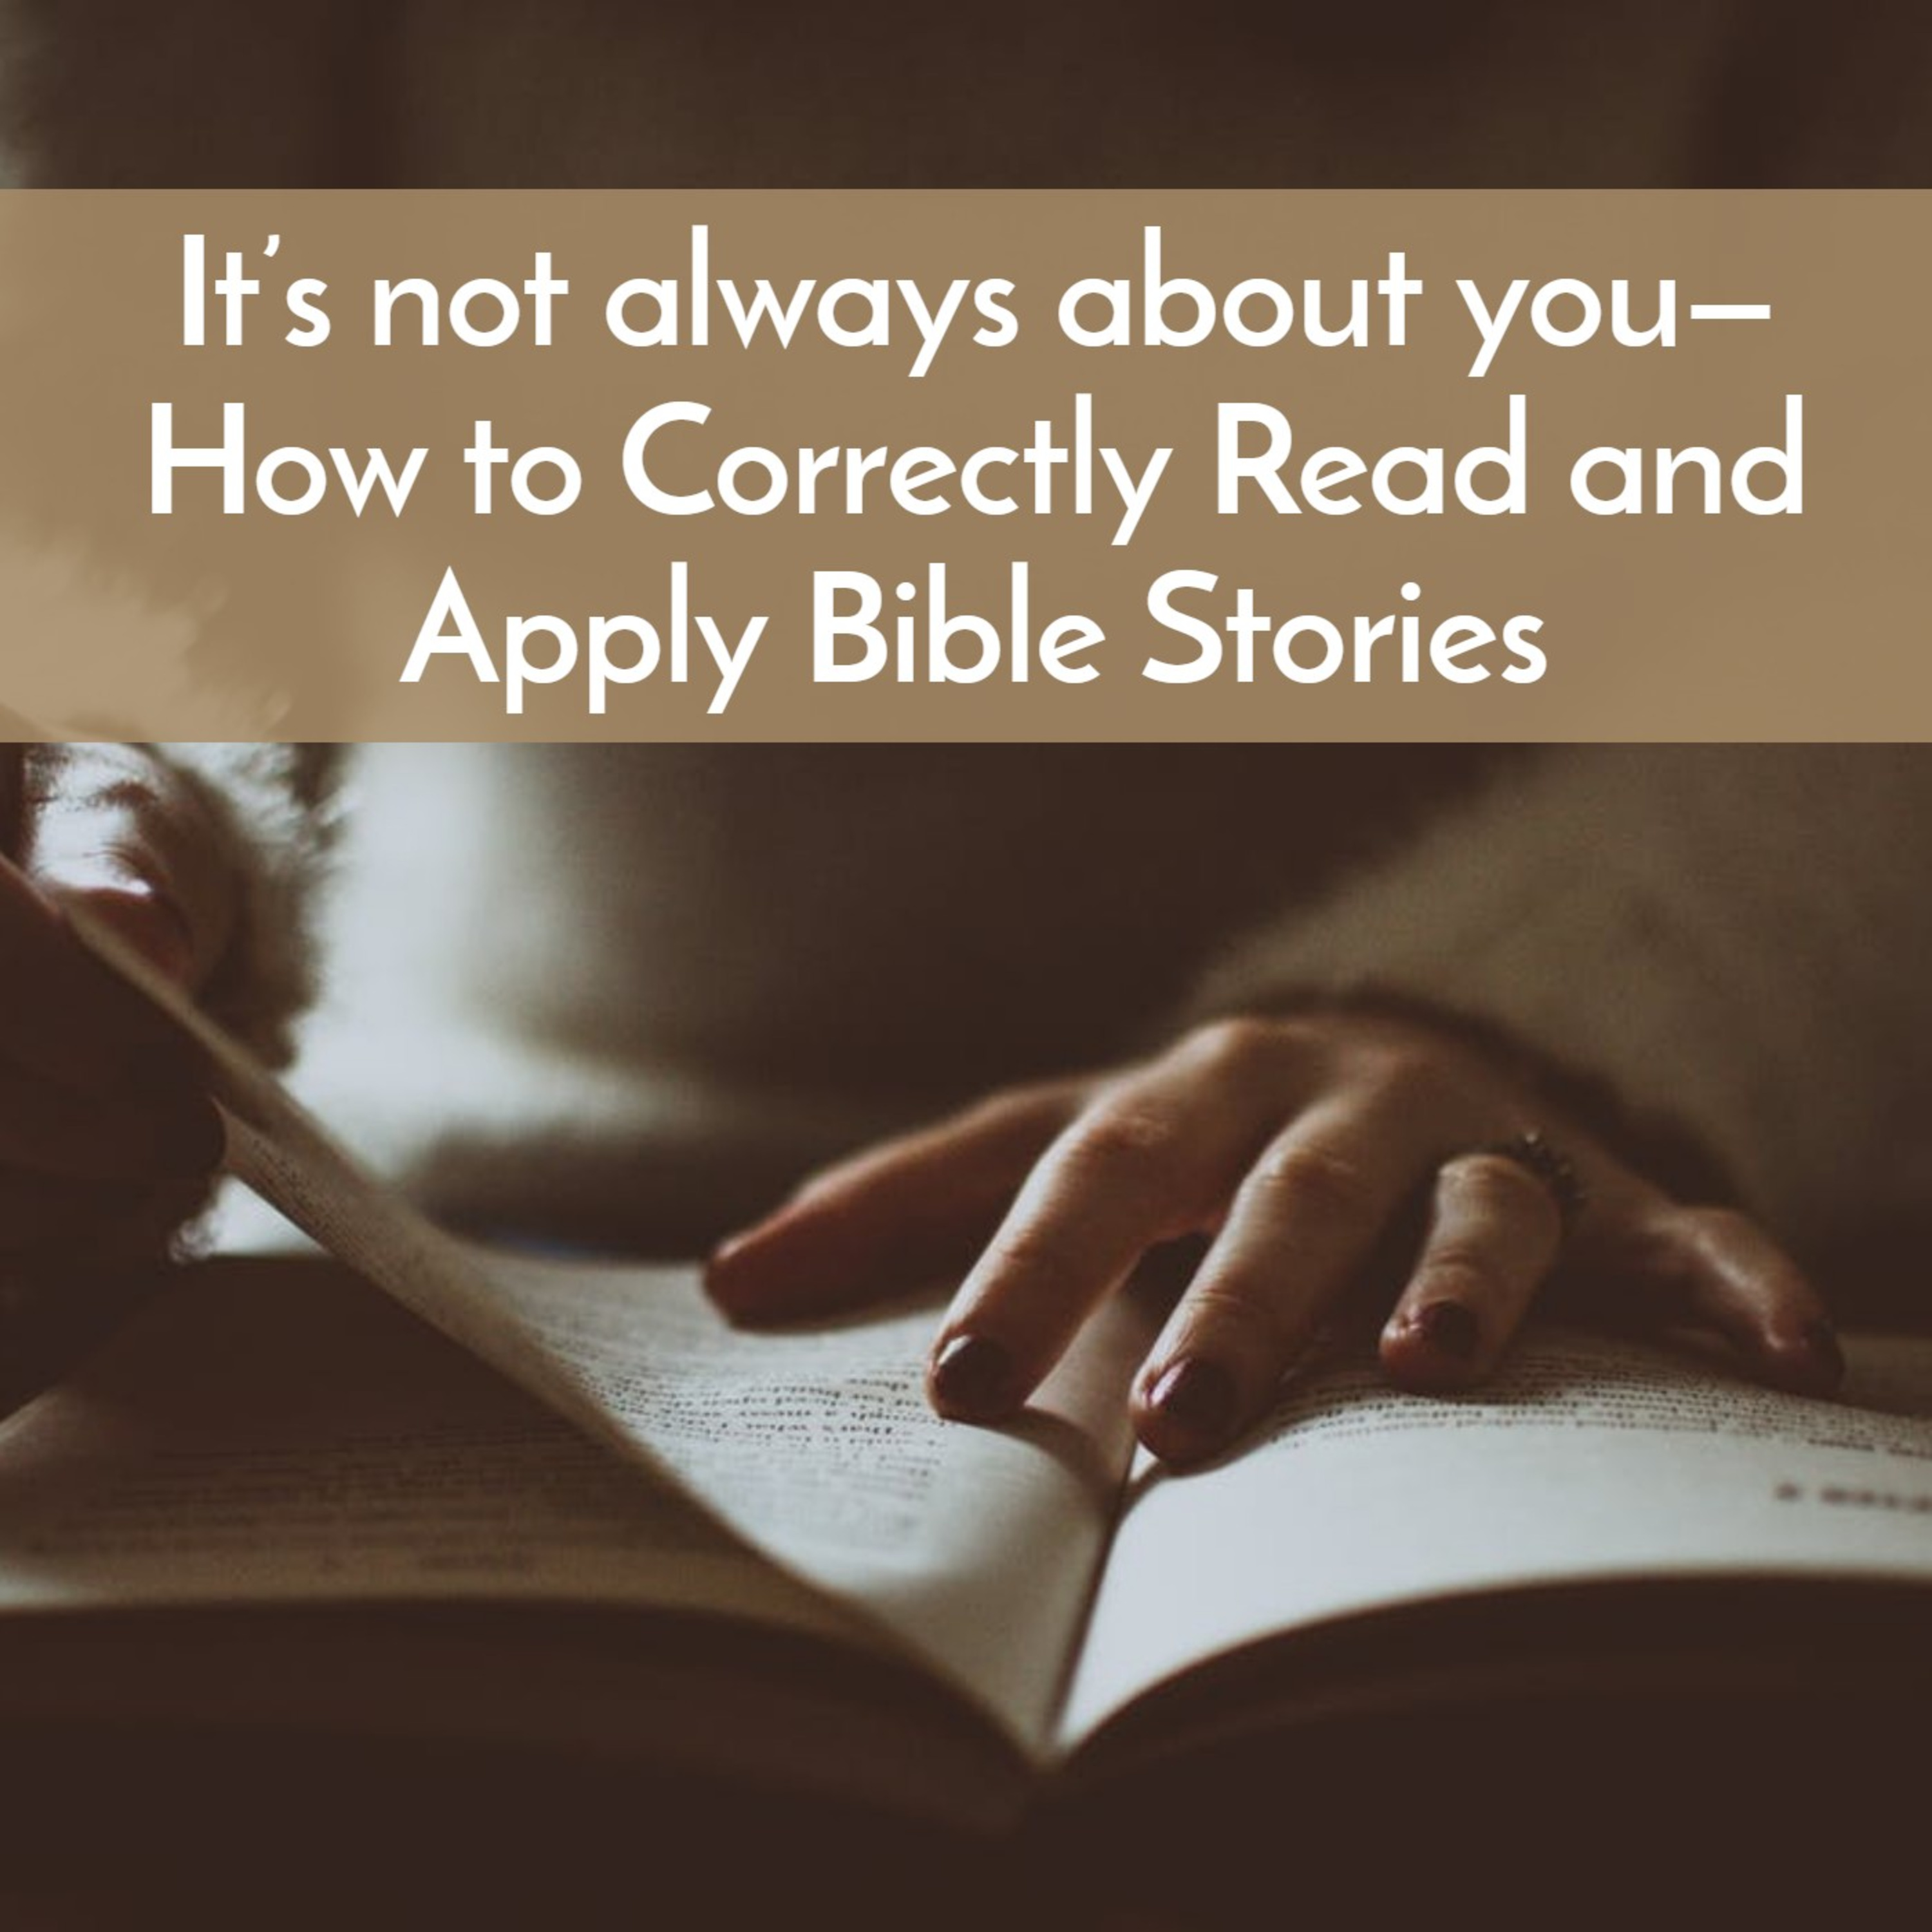 It's not always about you— How to Correctly Read and Apply Bible Stories